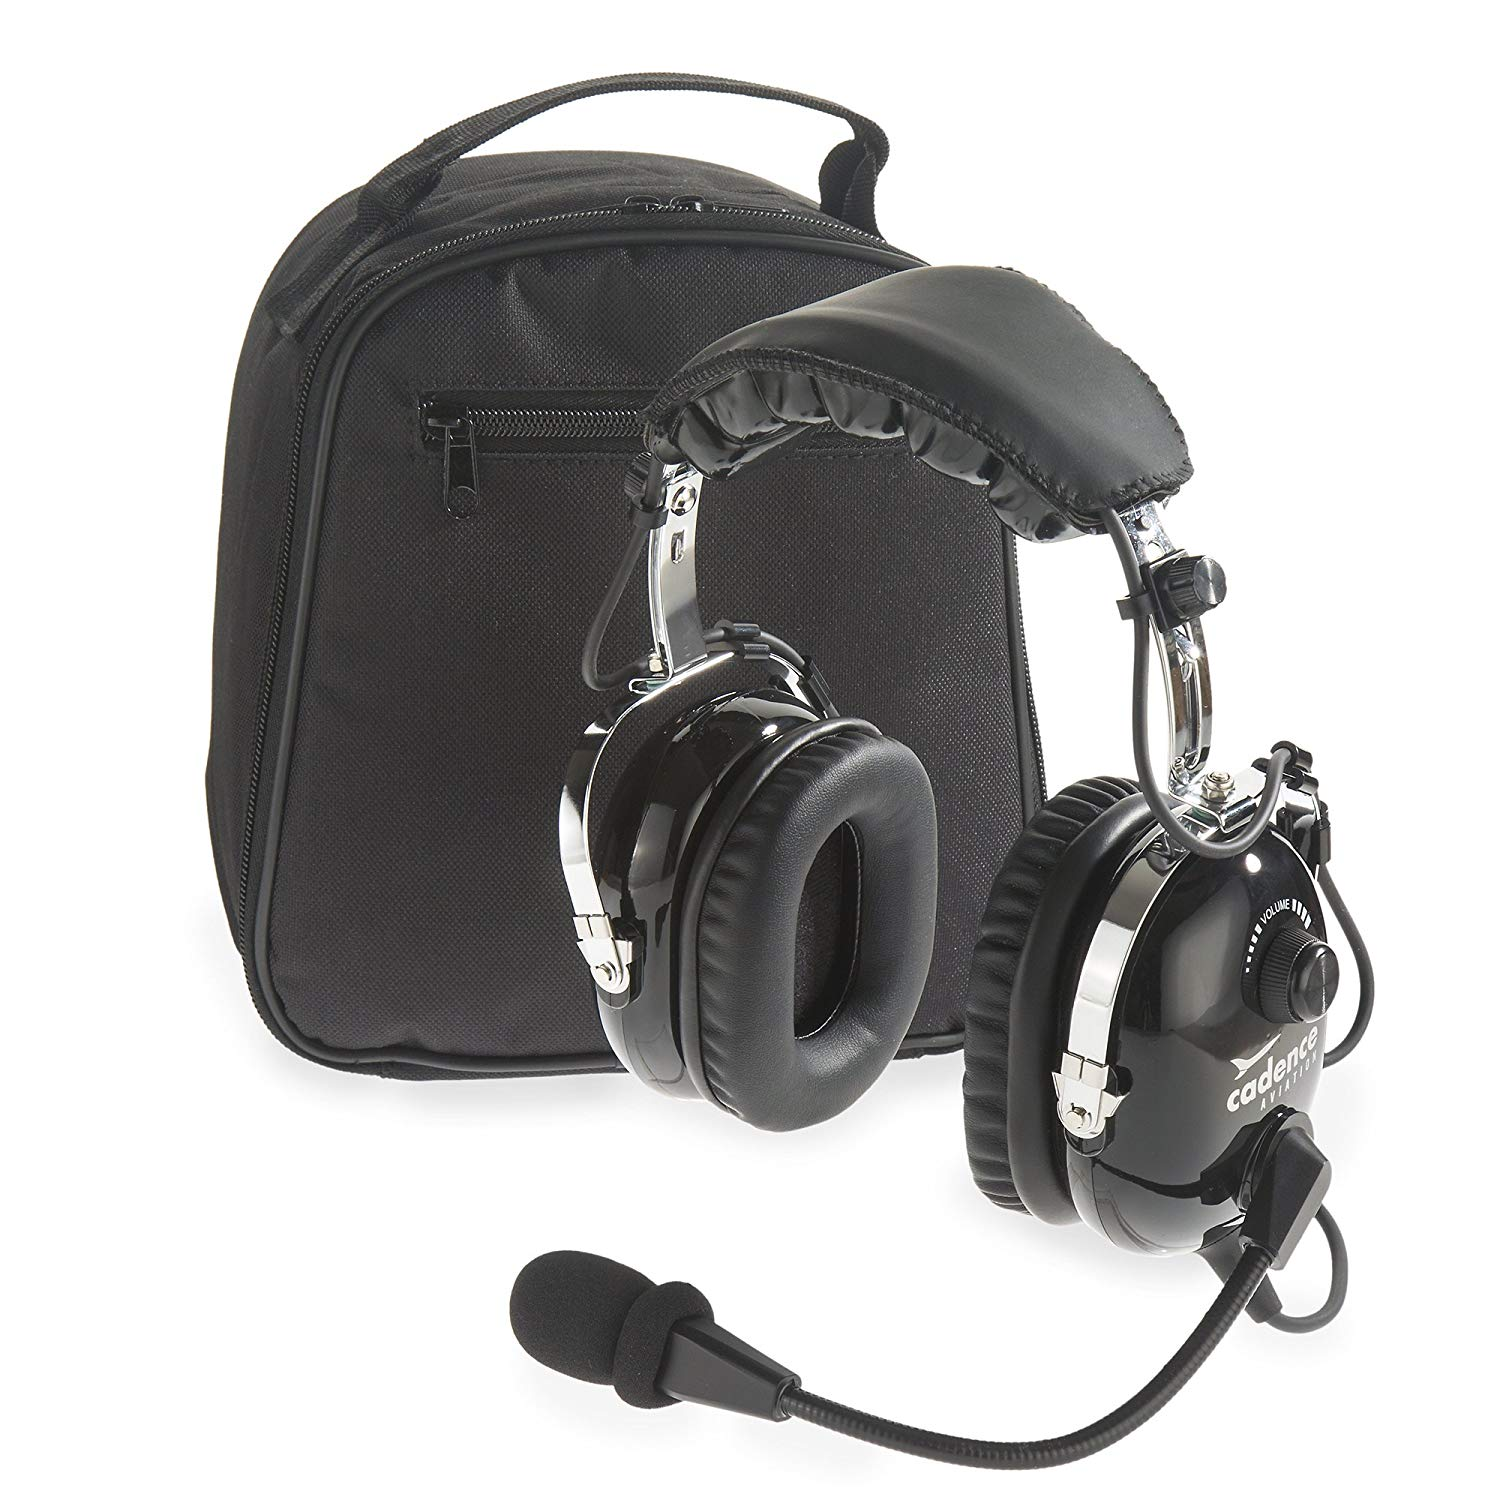 8397844111a Get Quotations · Cadence CA500 Premium PNR Pilot Aviation Headset with Aux  Input and Carrying Case - Black